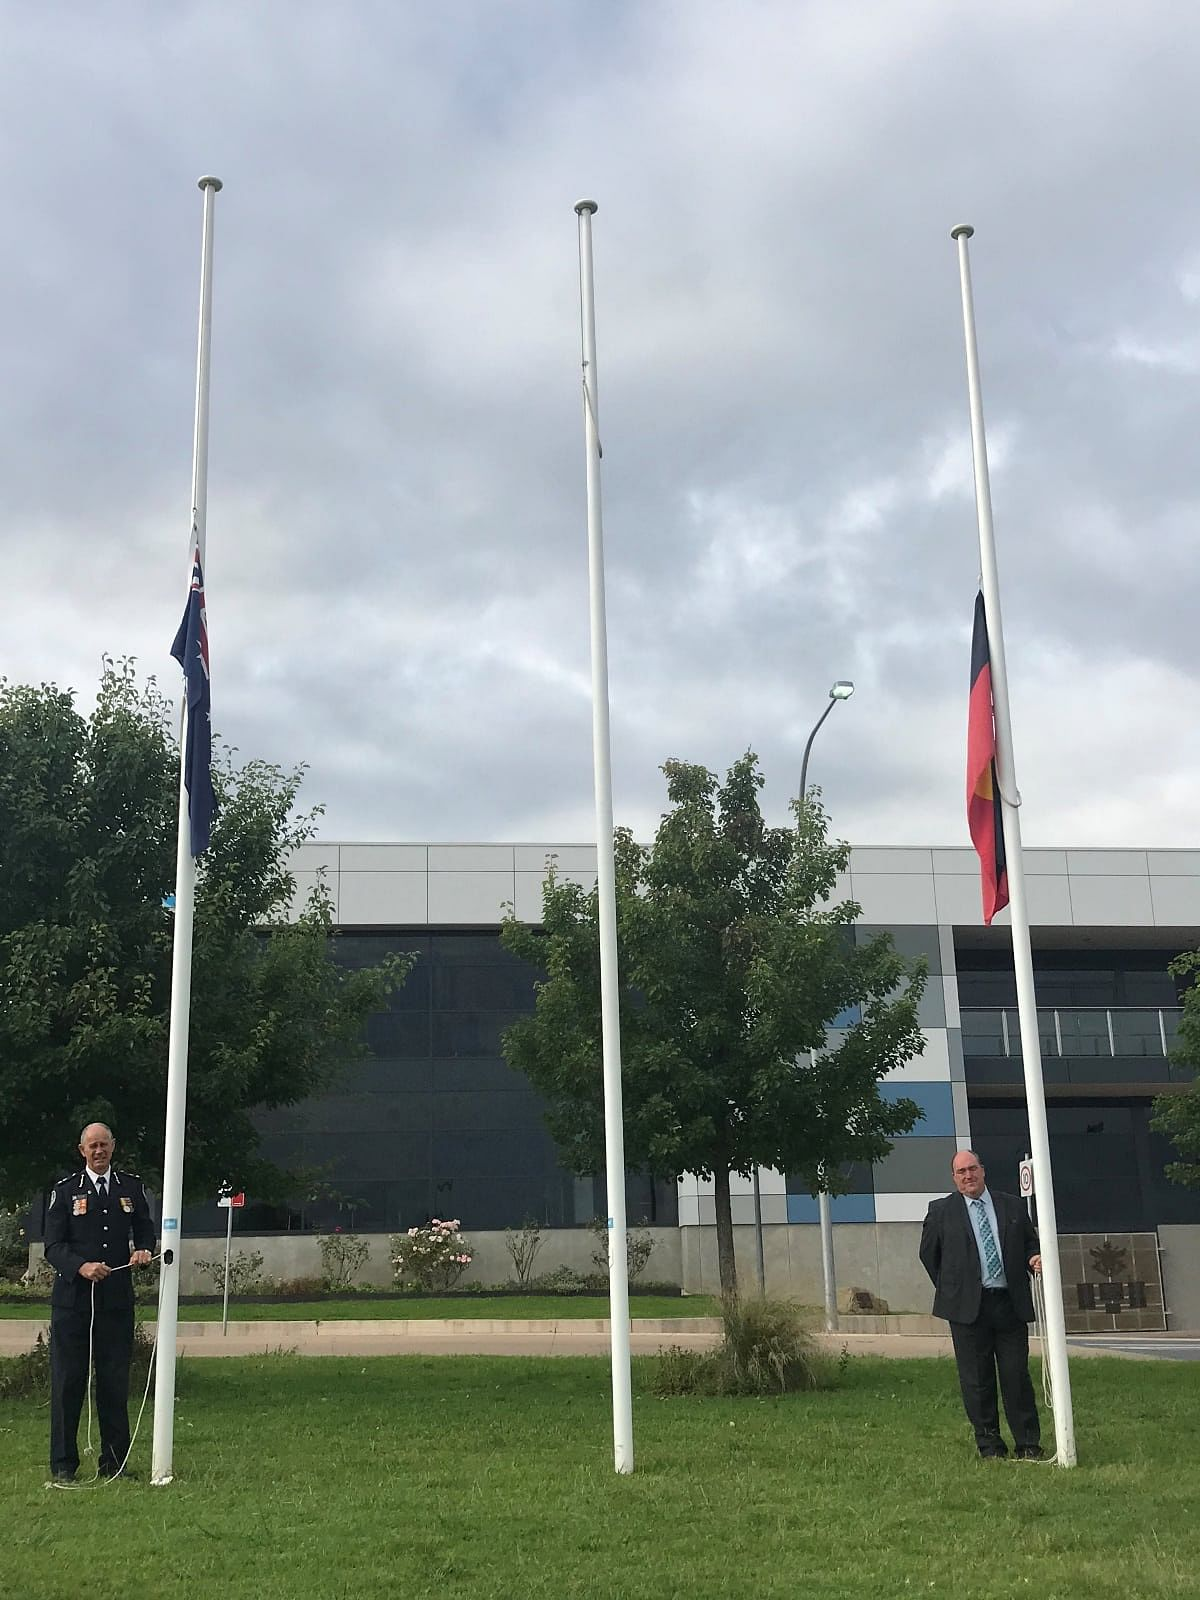 -1. NSW Rural Fire Service Far South Coast District Manager, Superintendent John Cullen and Bega Valley Shire Mayor, Russell Fitzpatrick lowered the flags to half-mast in Littleton Gardens this morning.